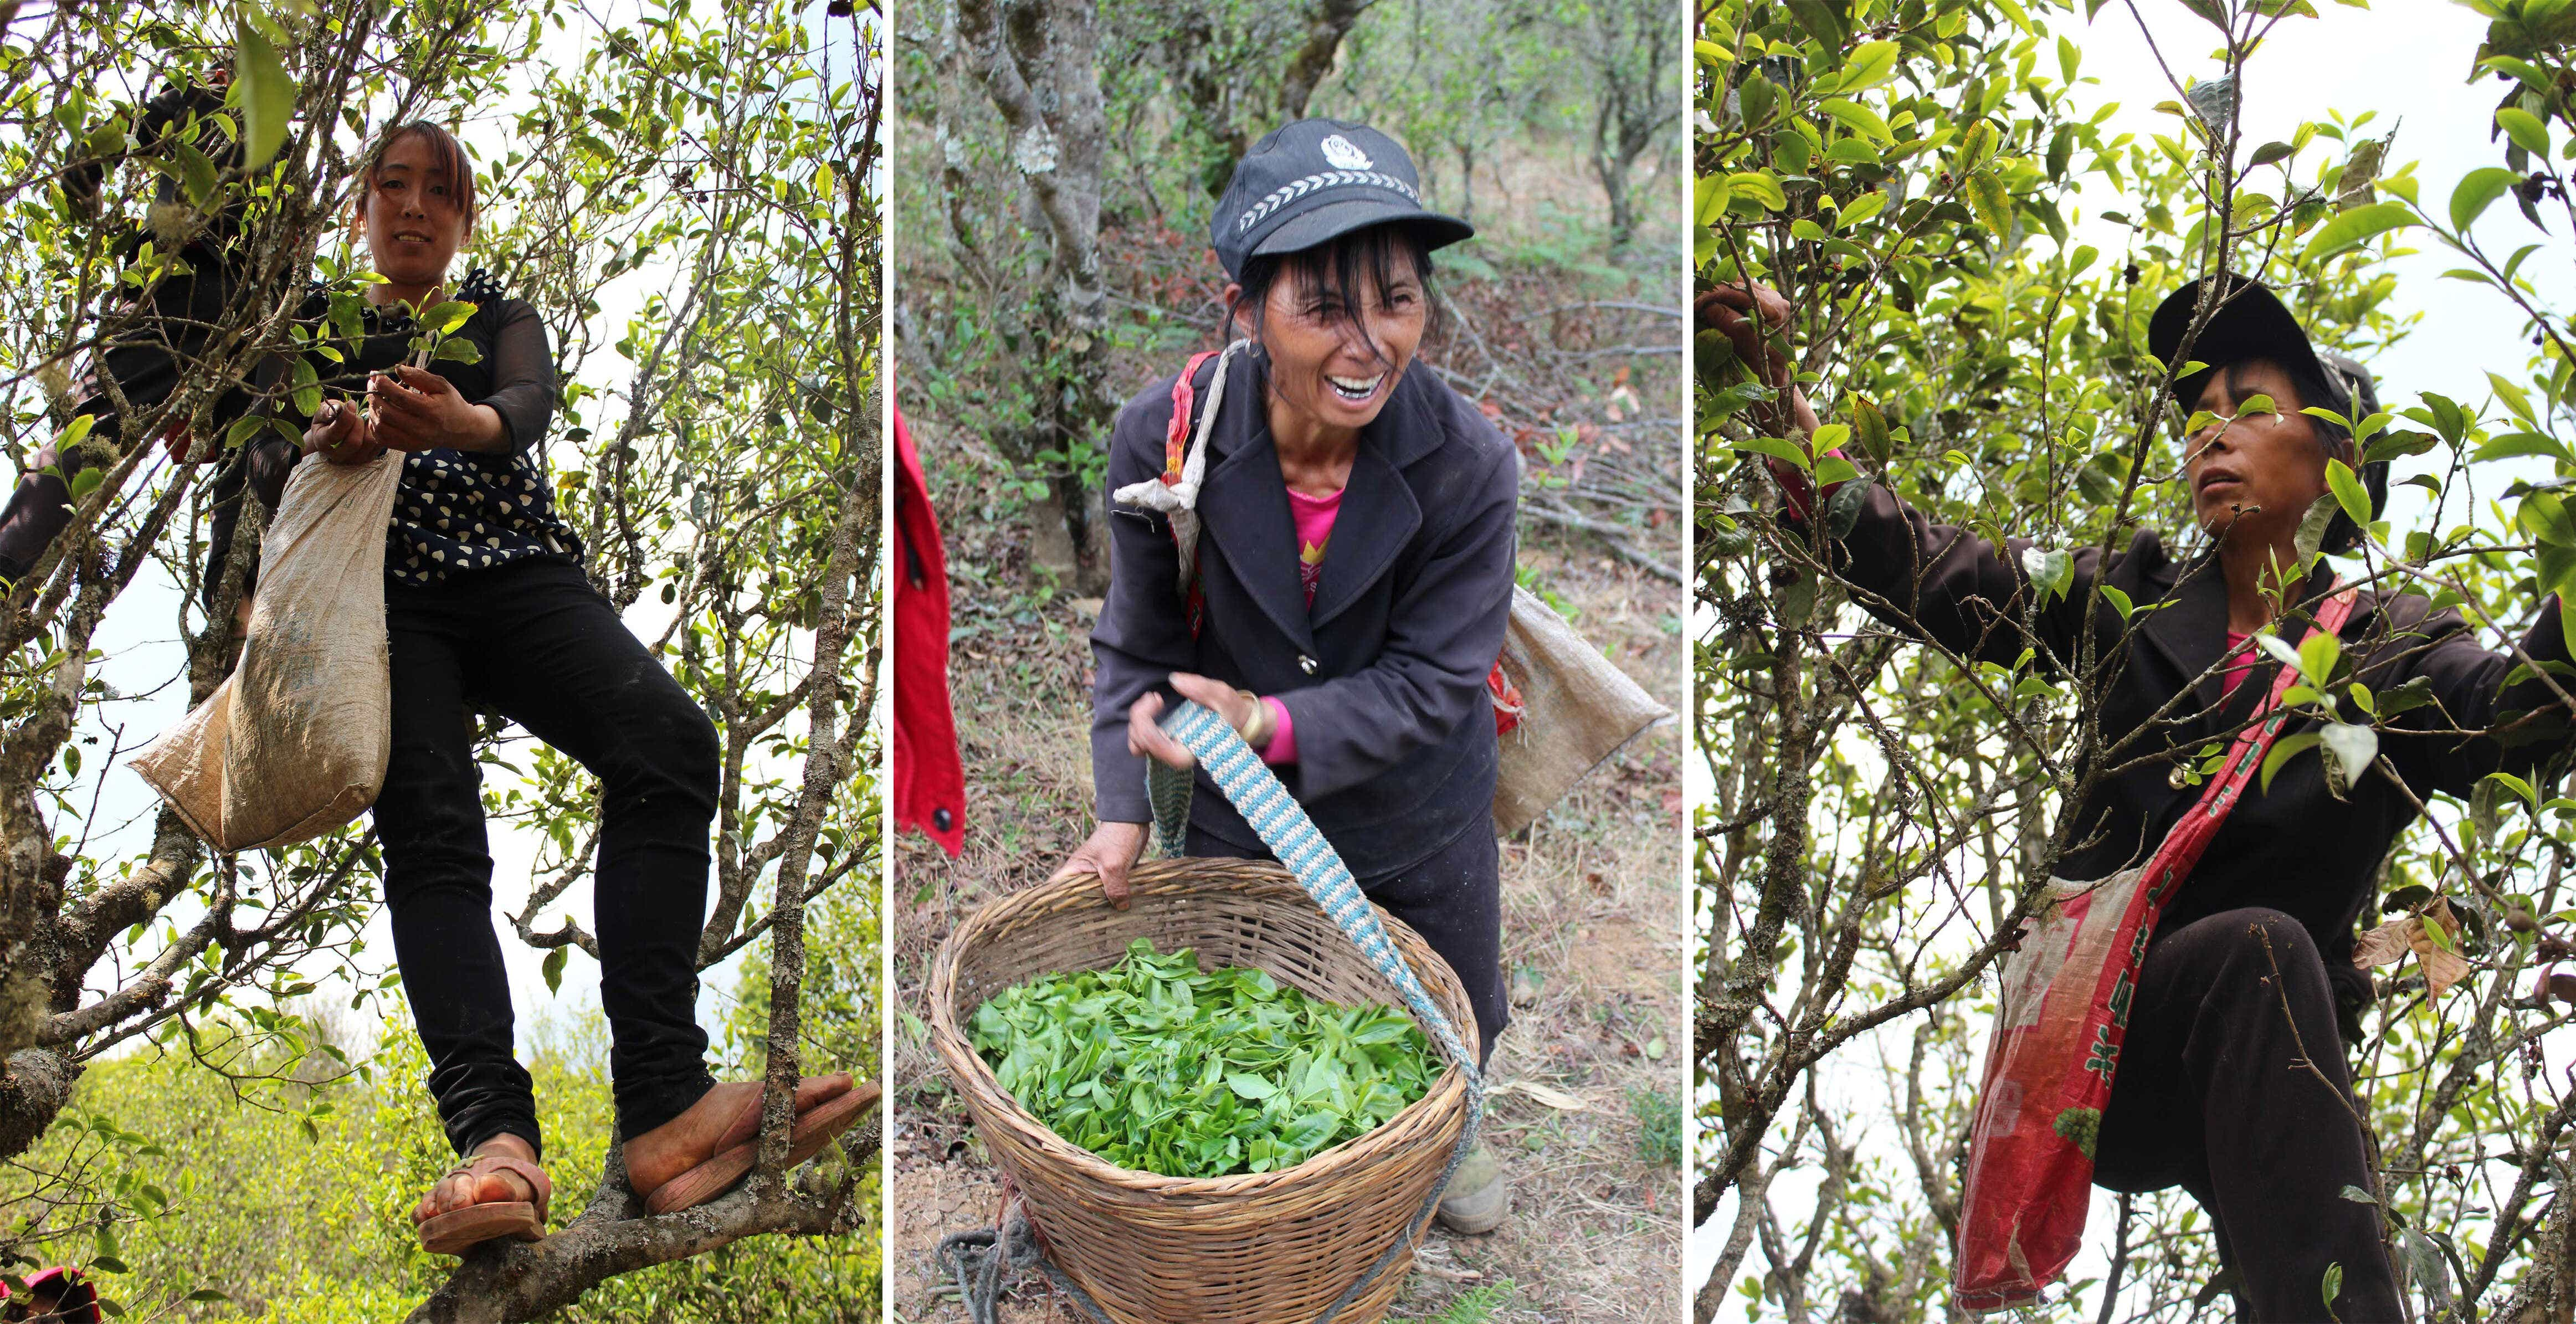 Ms. Li and her mother climb tea trees to forage spring leaves